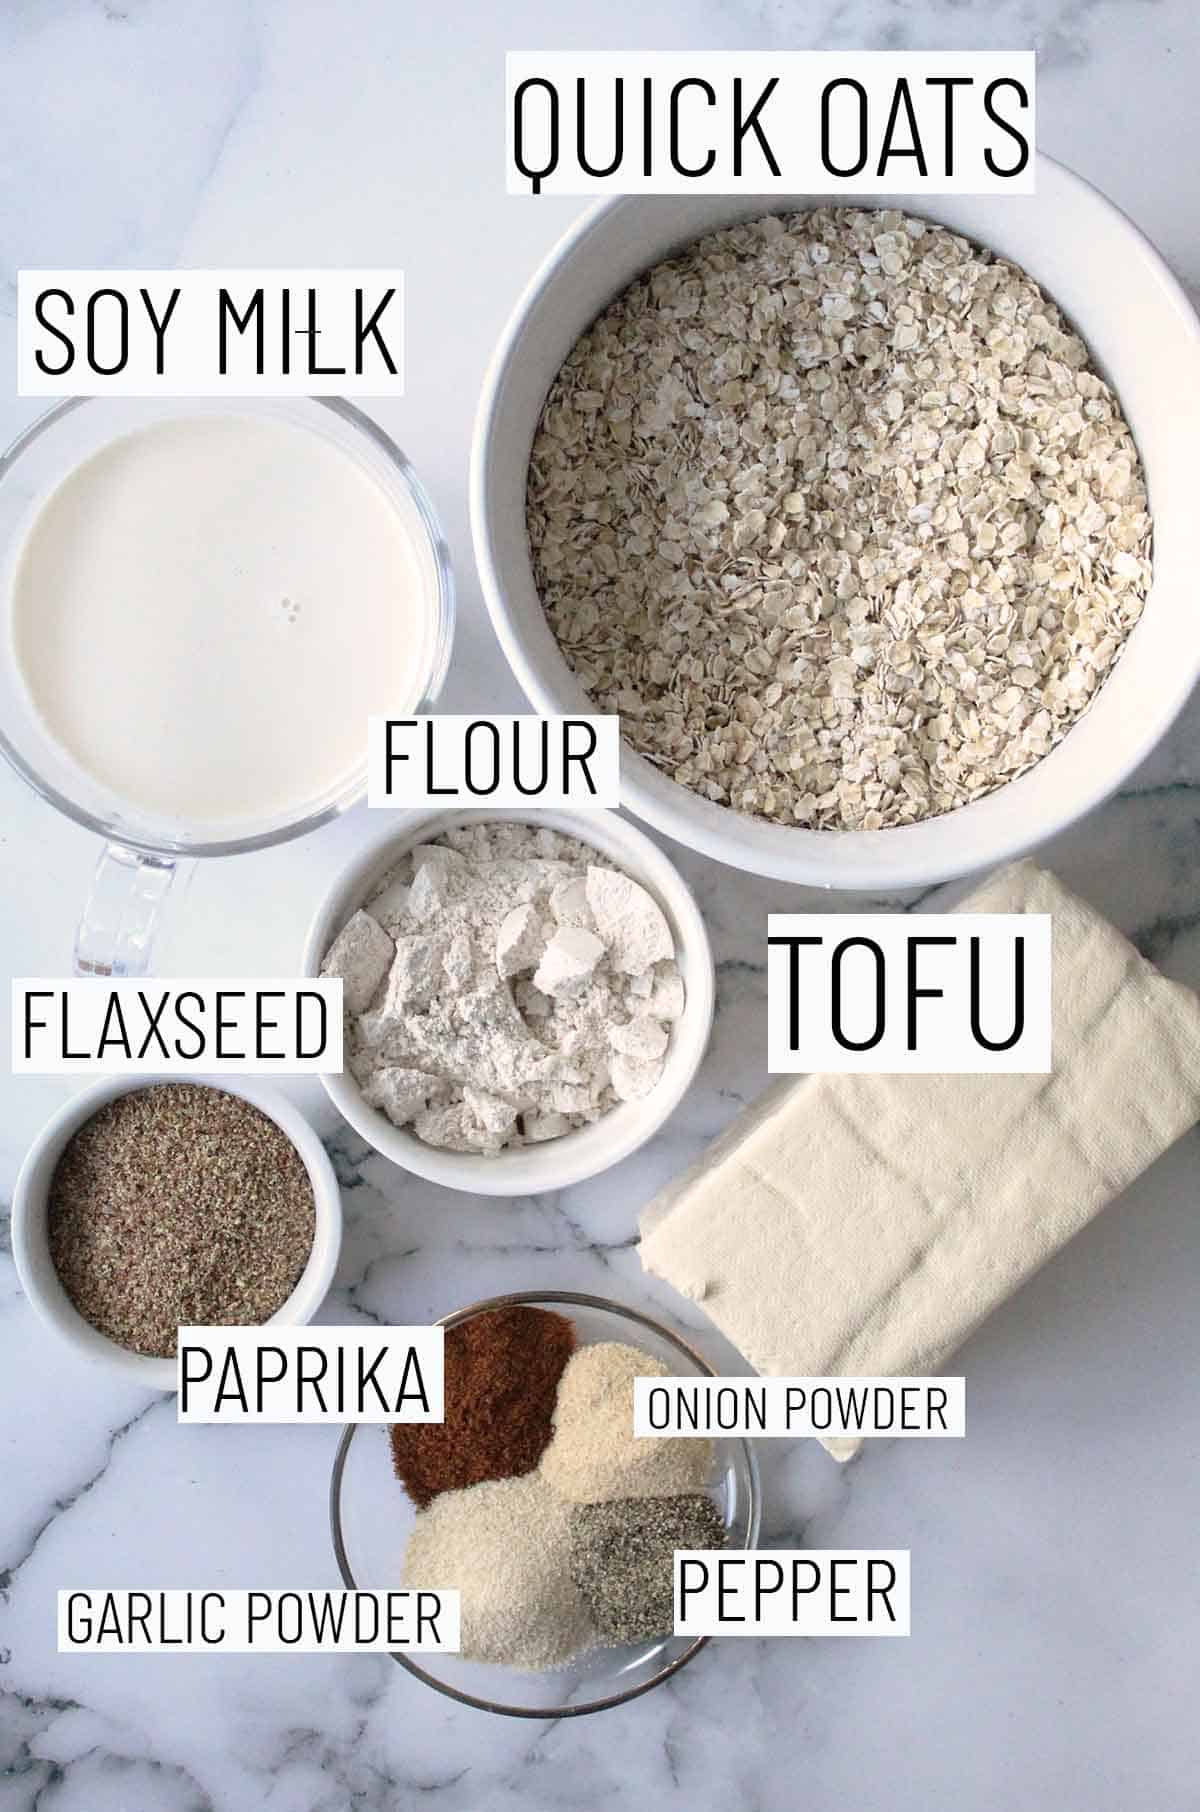 Flat lay image of recipe ingredients including oats, tofu, flour, soy milk, flaxseed, paprika, onion powder, garlic powder, and pepper.